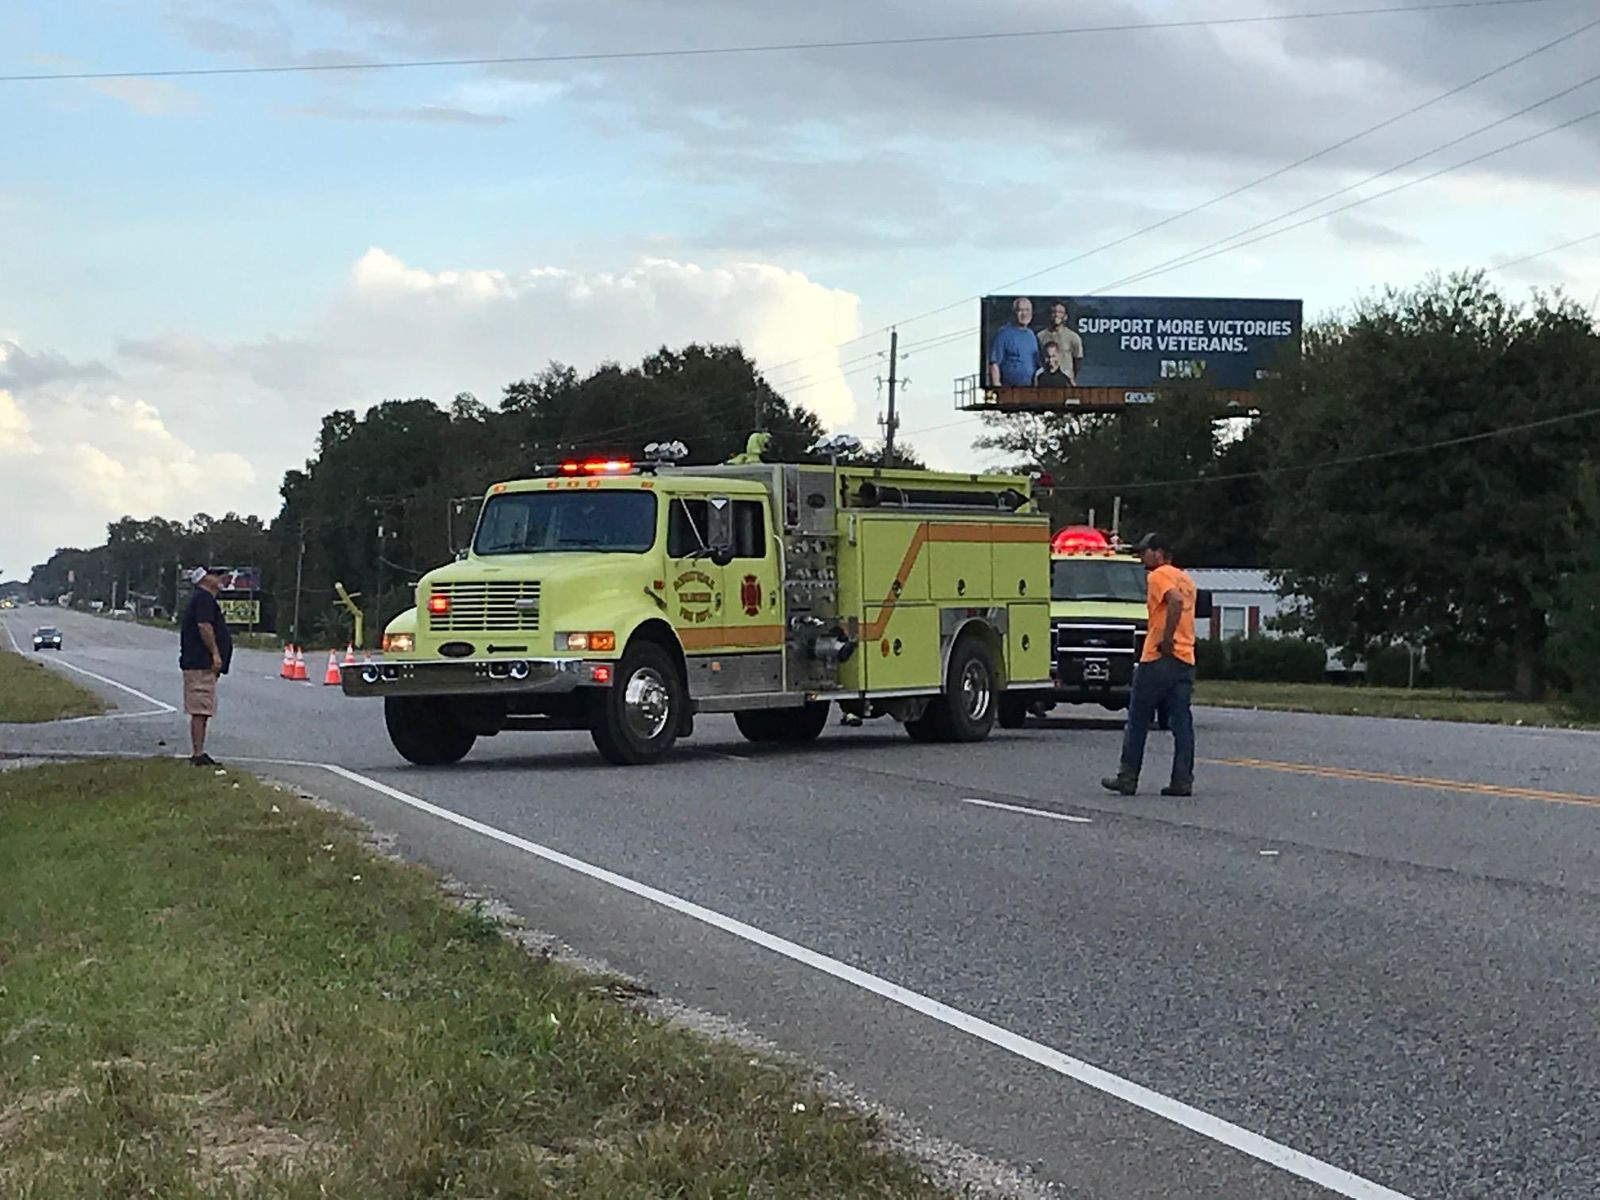 (WPMI) Police respond to head-on crash on Hwy 59 in Loxley